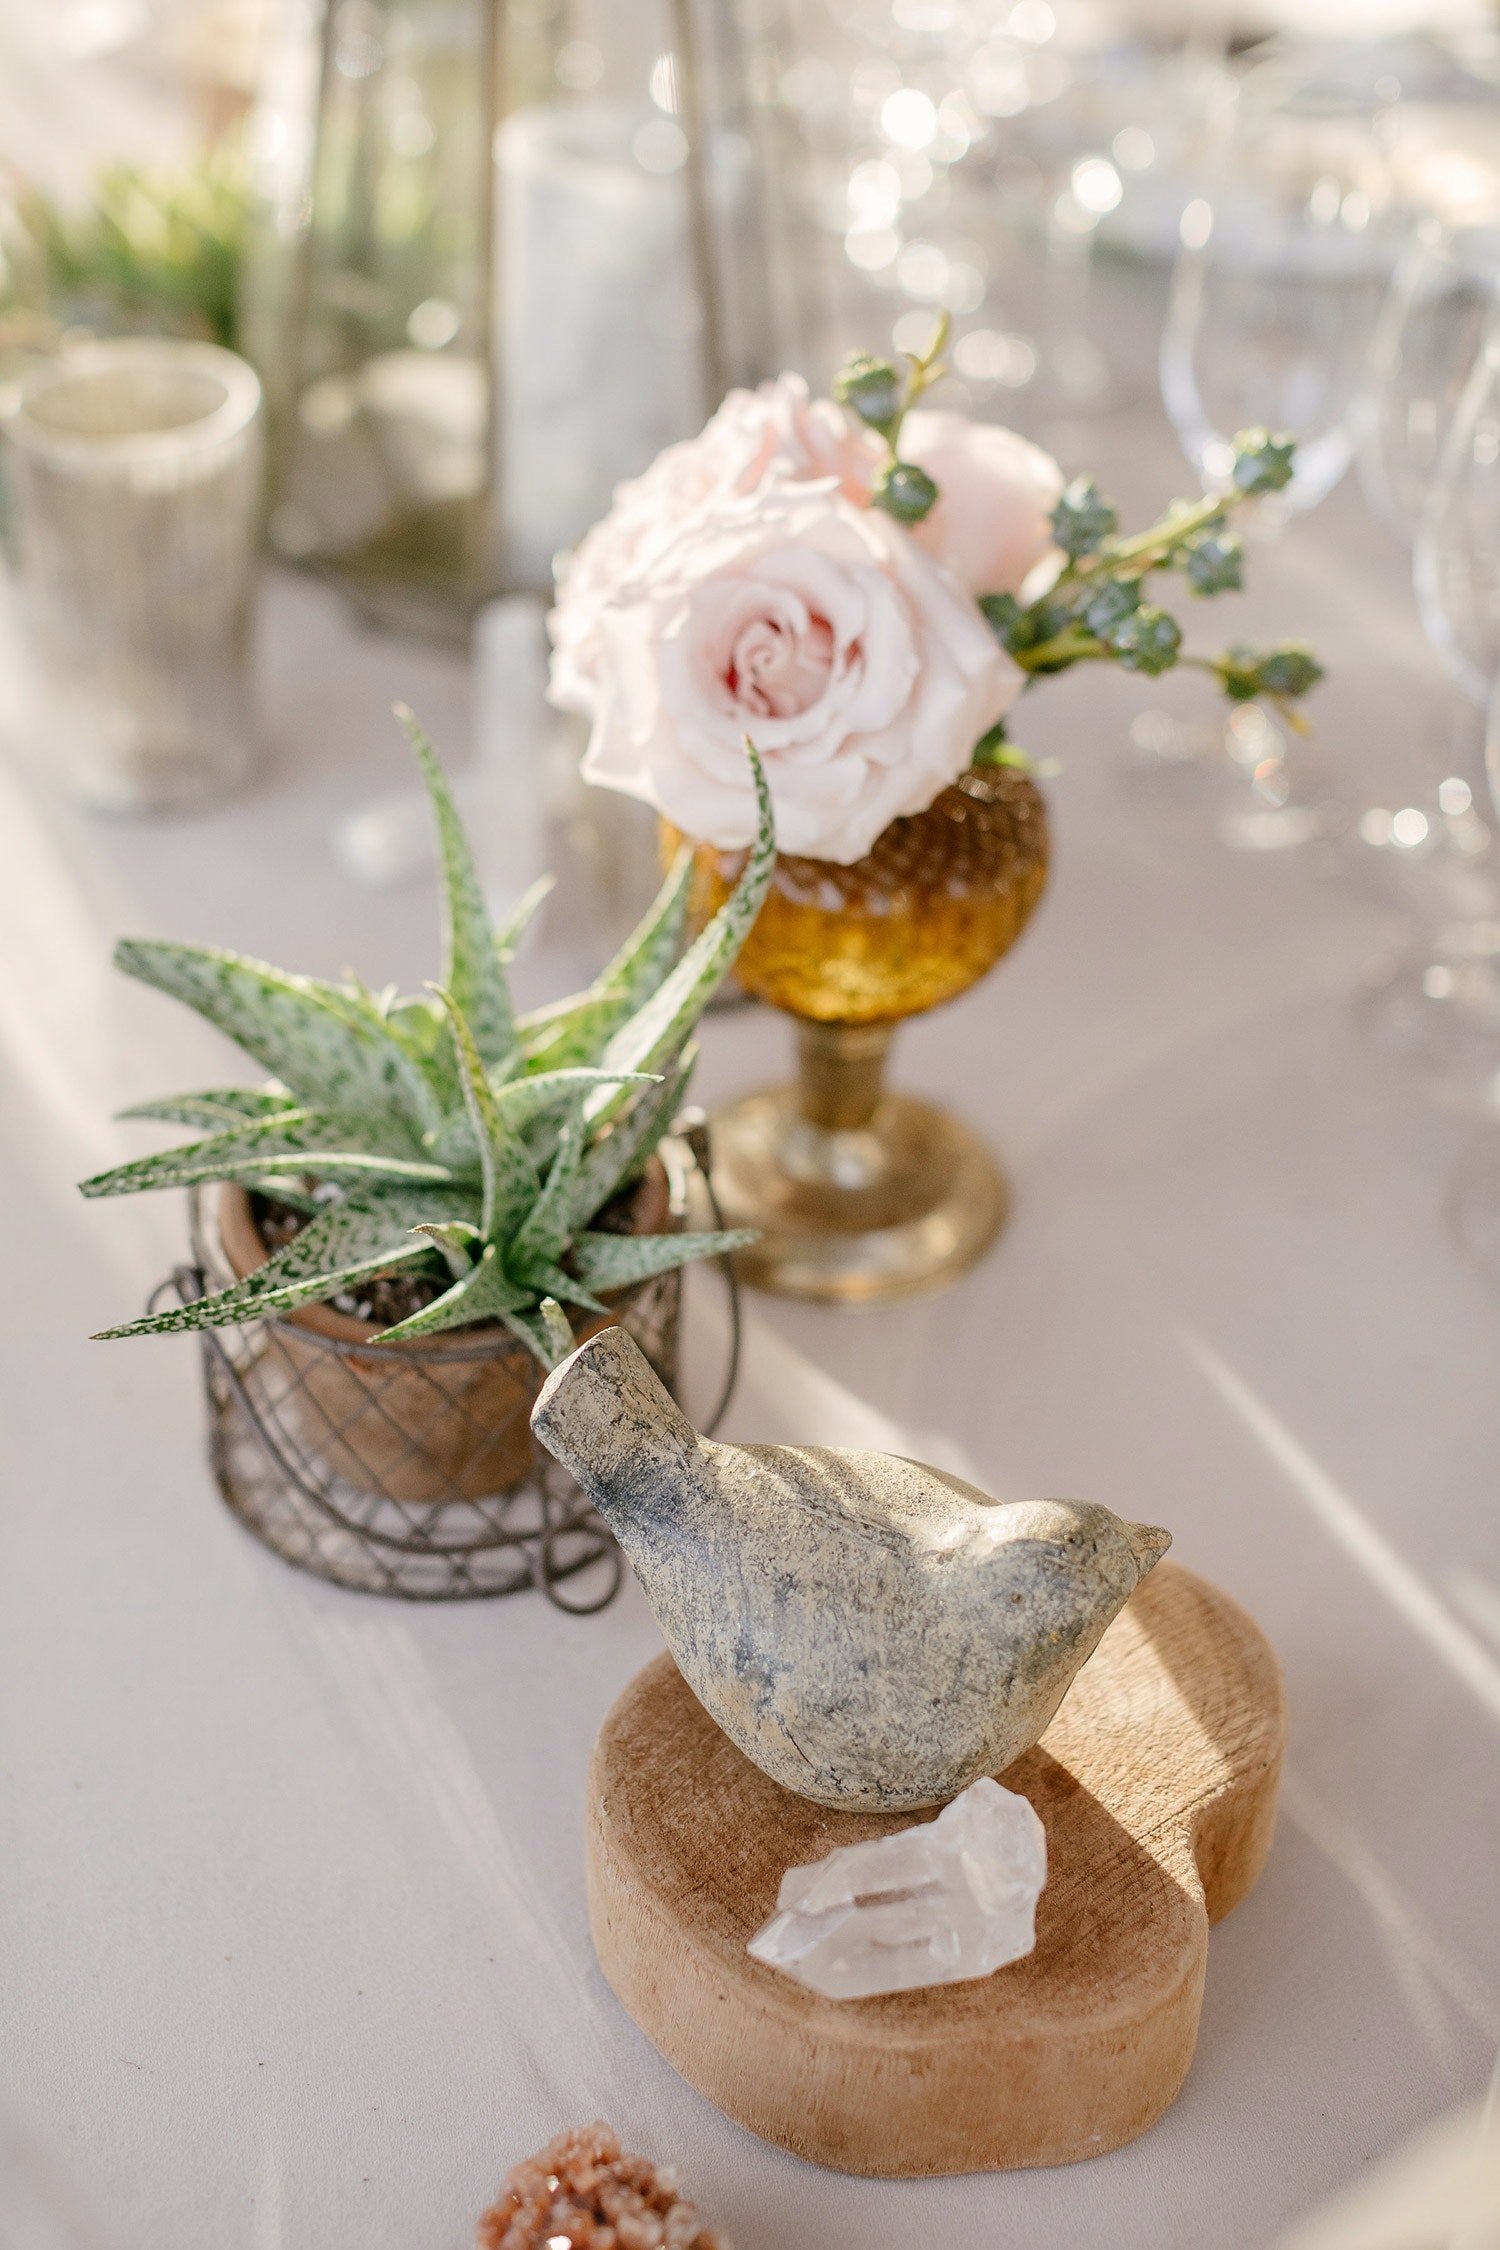 21 Succulent Wedding Centerpieces That Wow Photos Partyslate